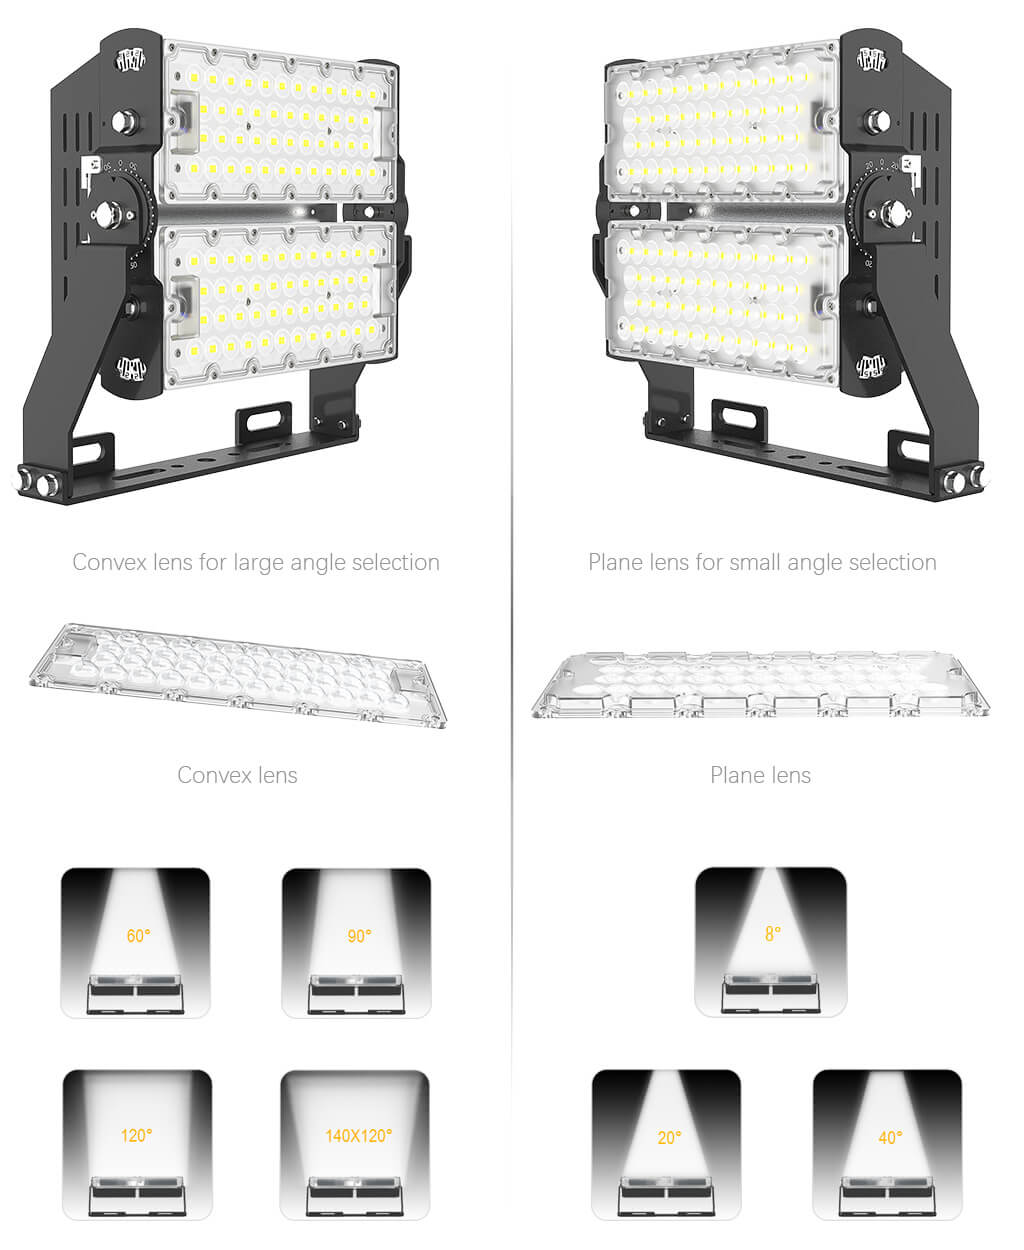 with angle adjustalbe large outdoor flood lights series for business for concession-13